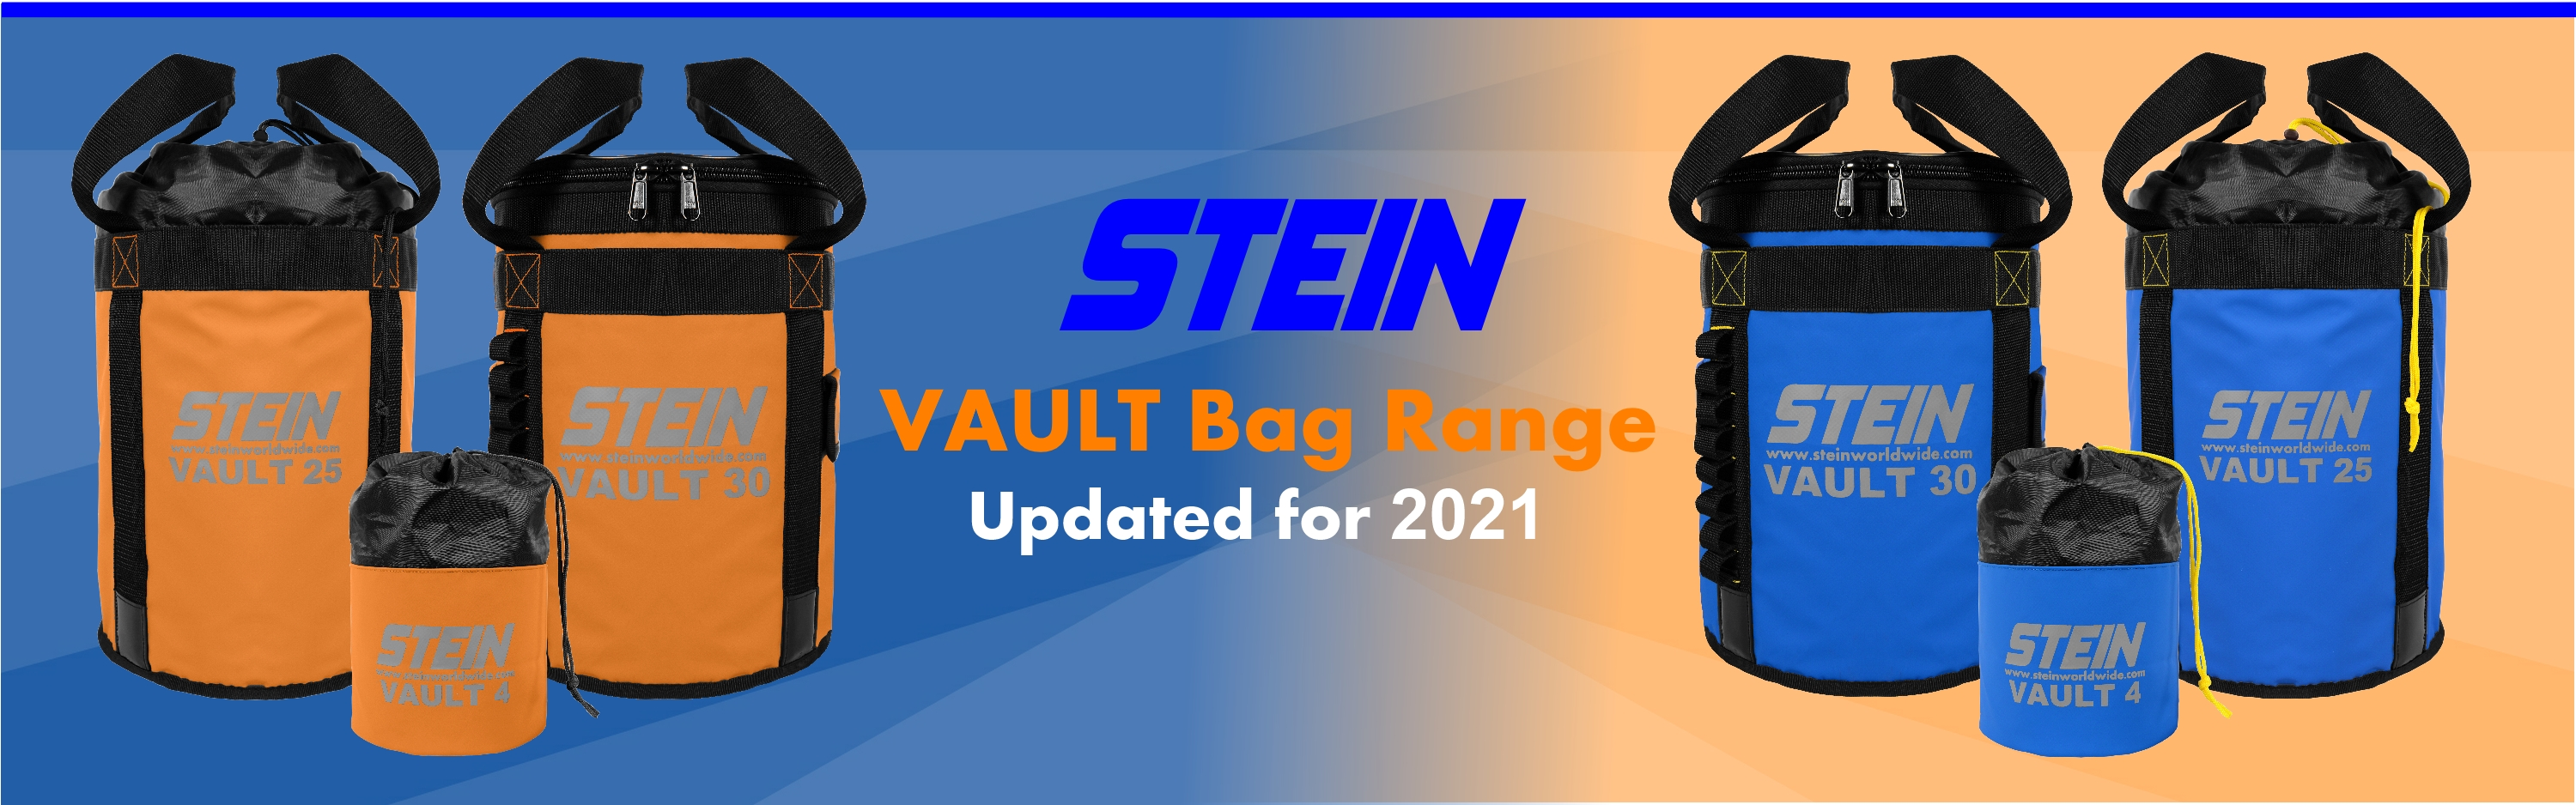 STEIN New Products